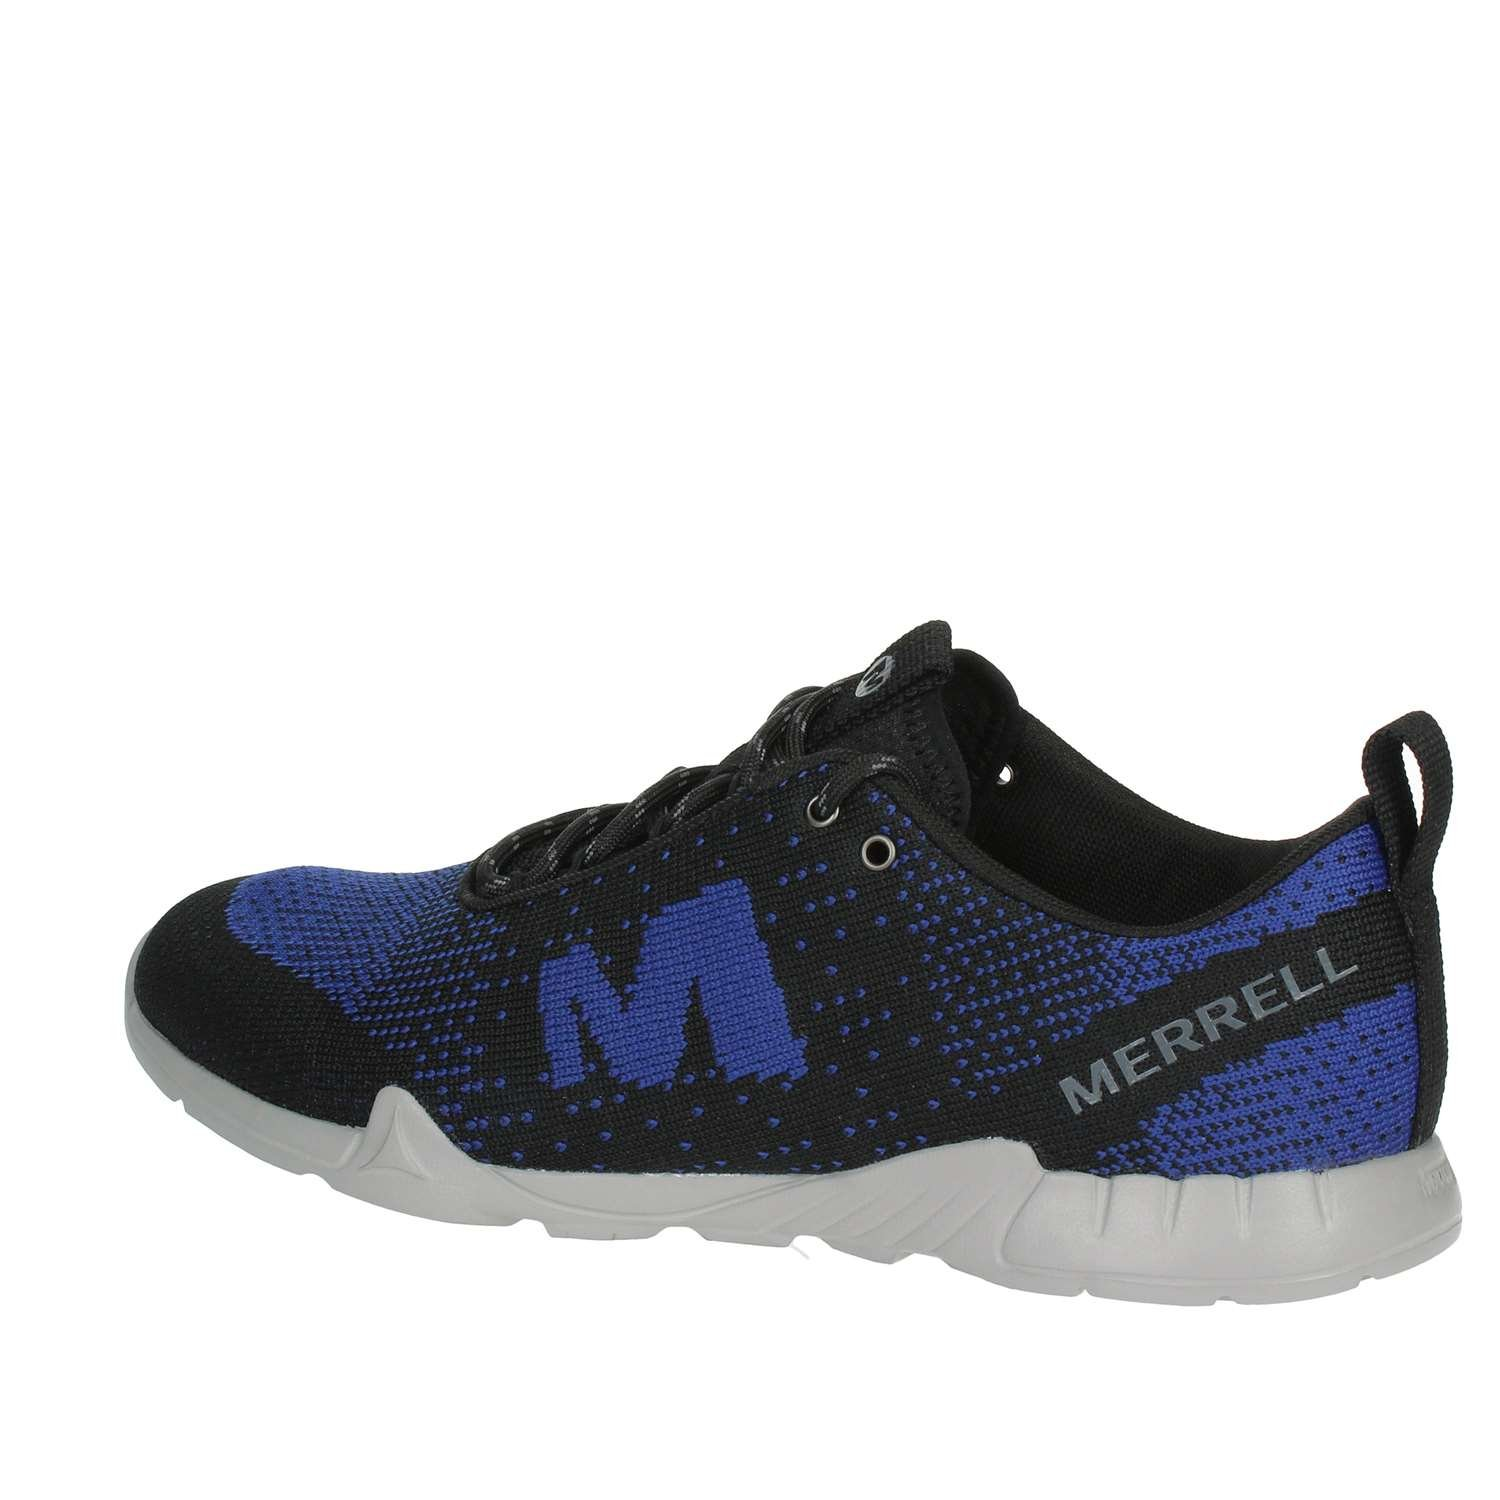 Merrell J94325 Sneakers Uomo: Amazon.it: Scarpe e borse